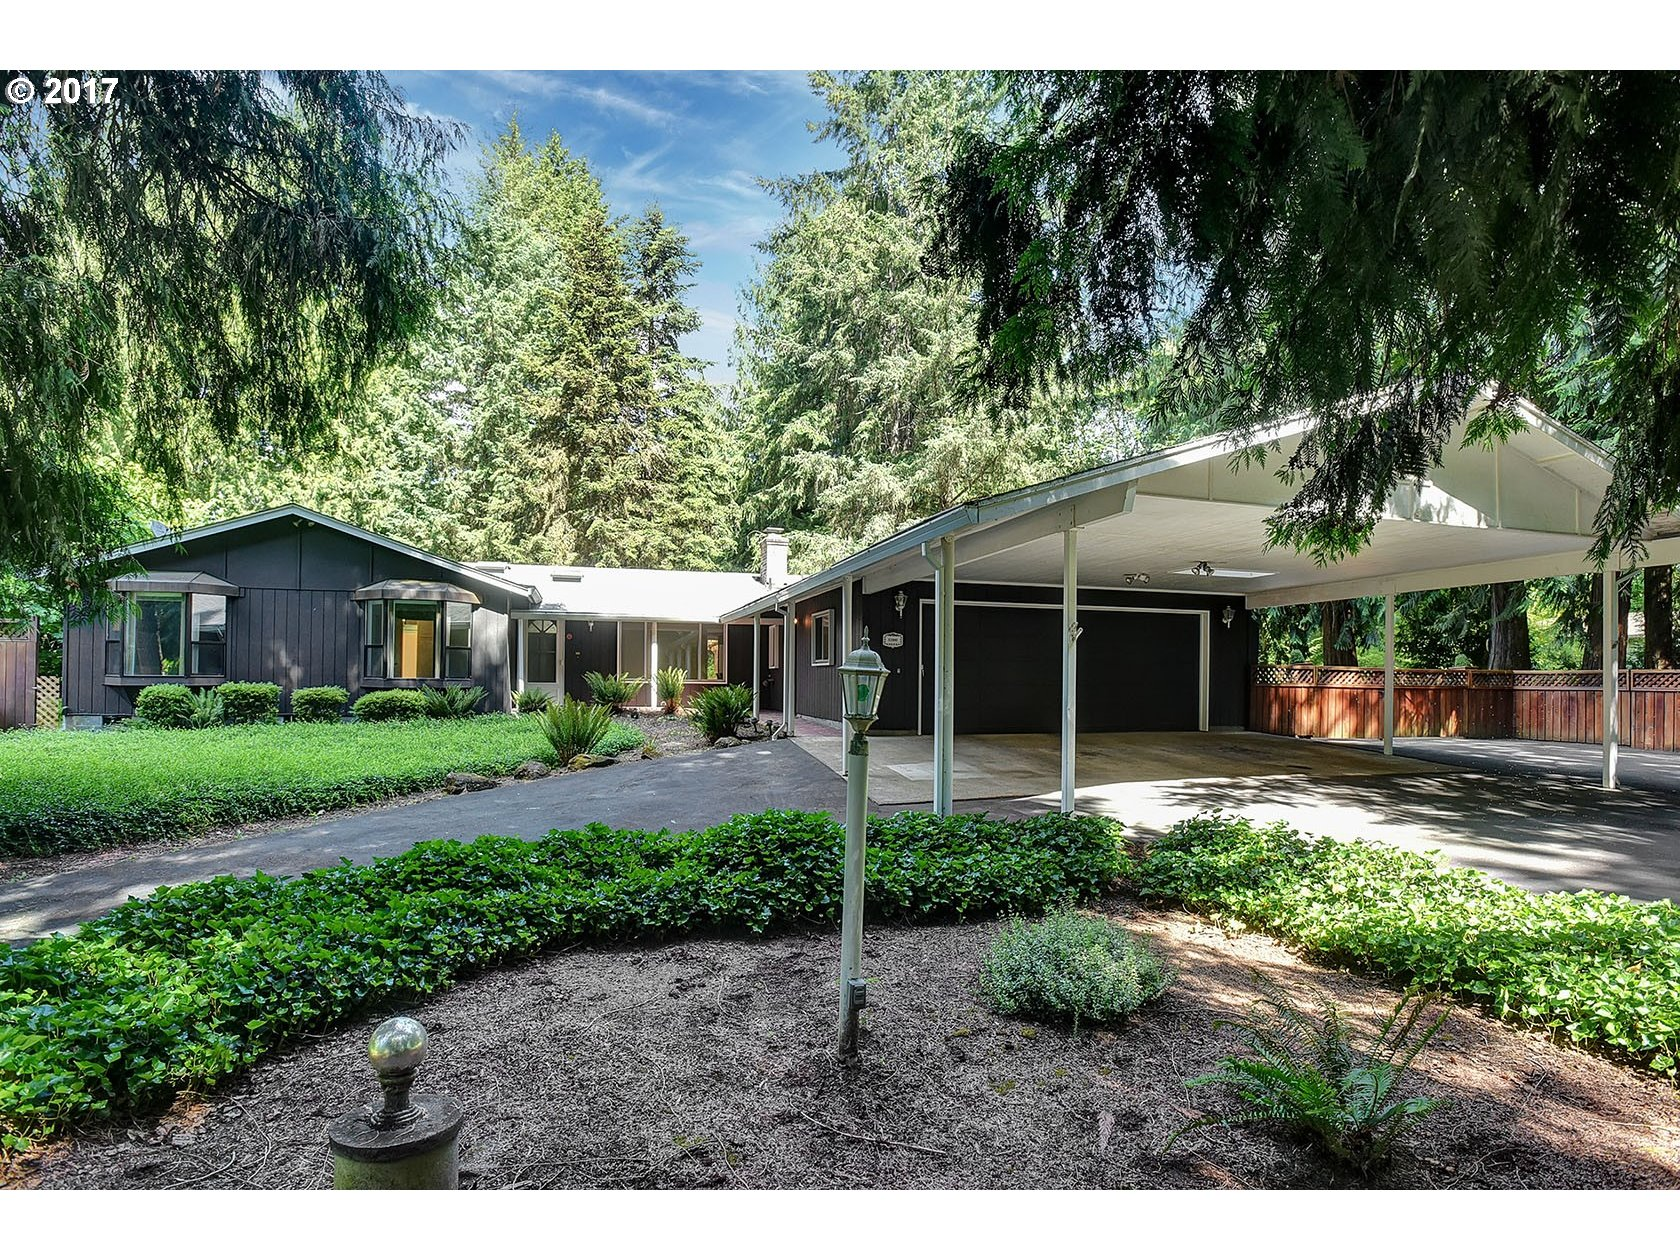 32000 S SHADY DELL RD, Molalla, OR 97038